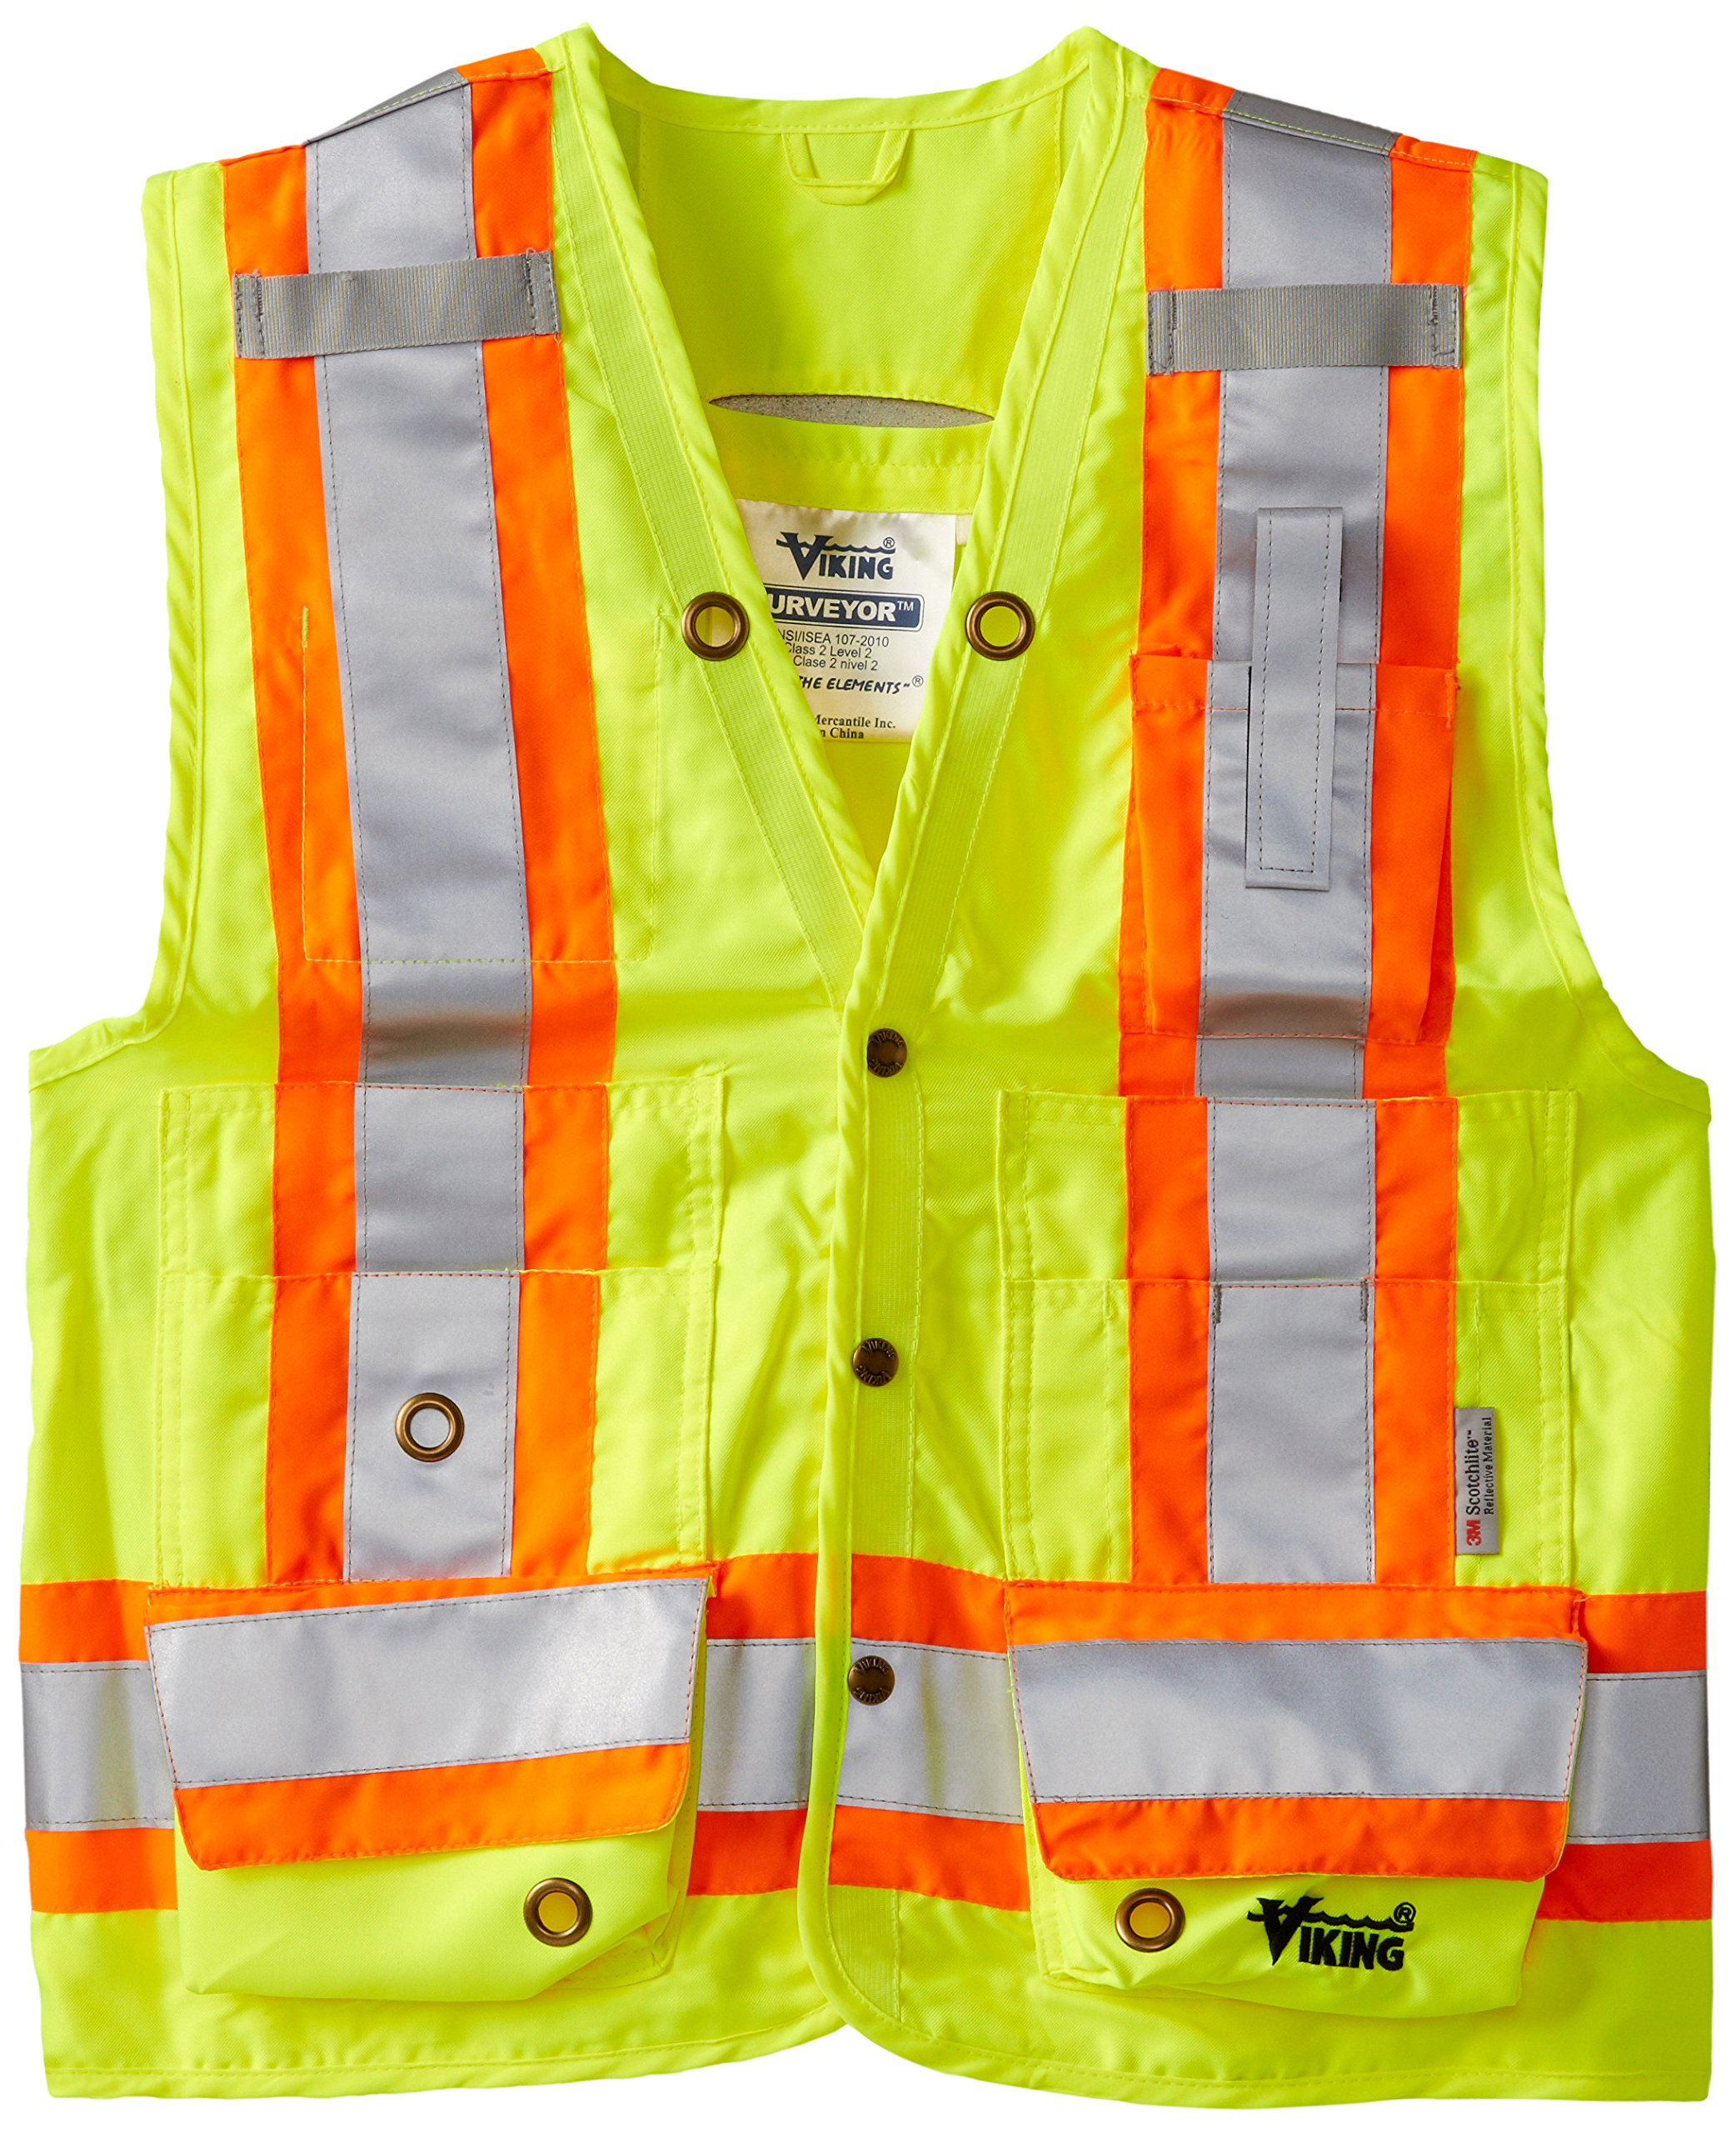 Viking Surveyor Hi-Vis Safety Vest, Green, XX-Large by Viking (Image #1)